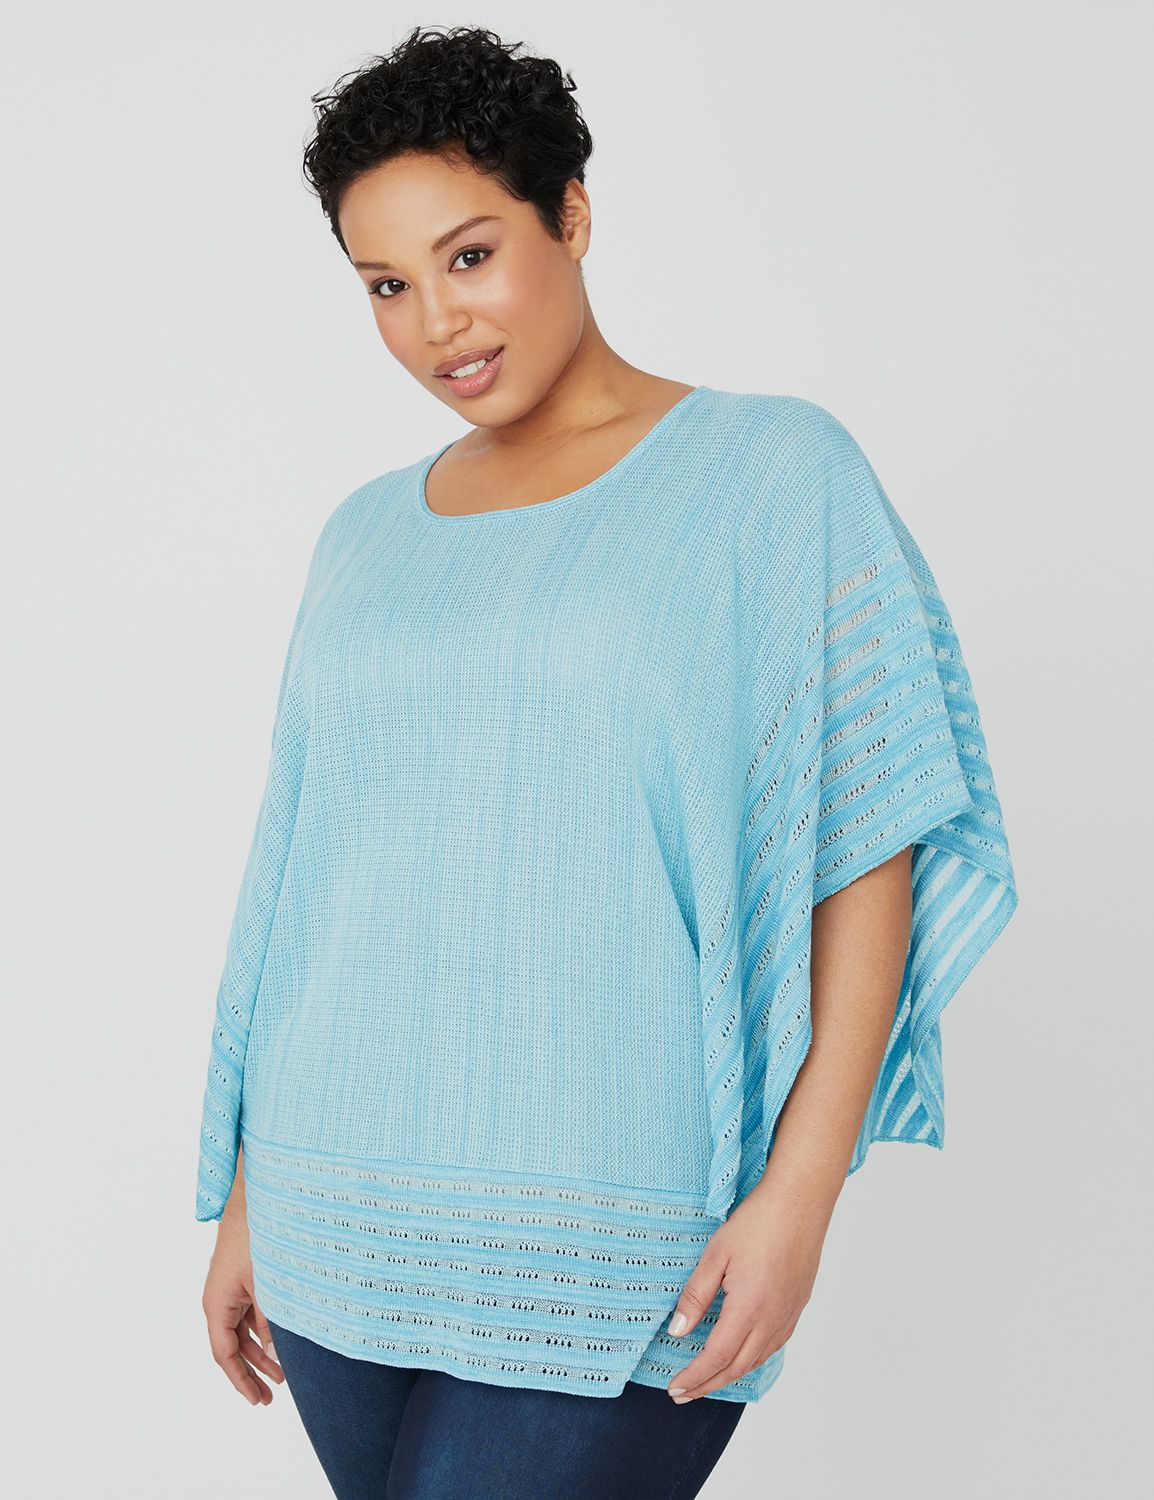 Rippled Edge Sweater 1083897 KimonoPullover 212 MP-300107466